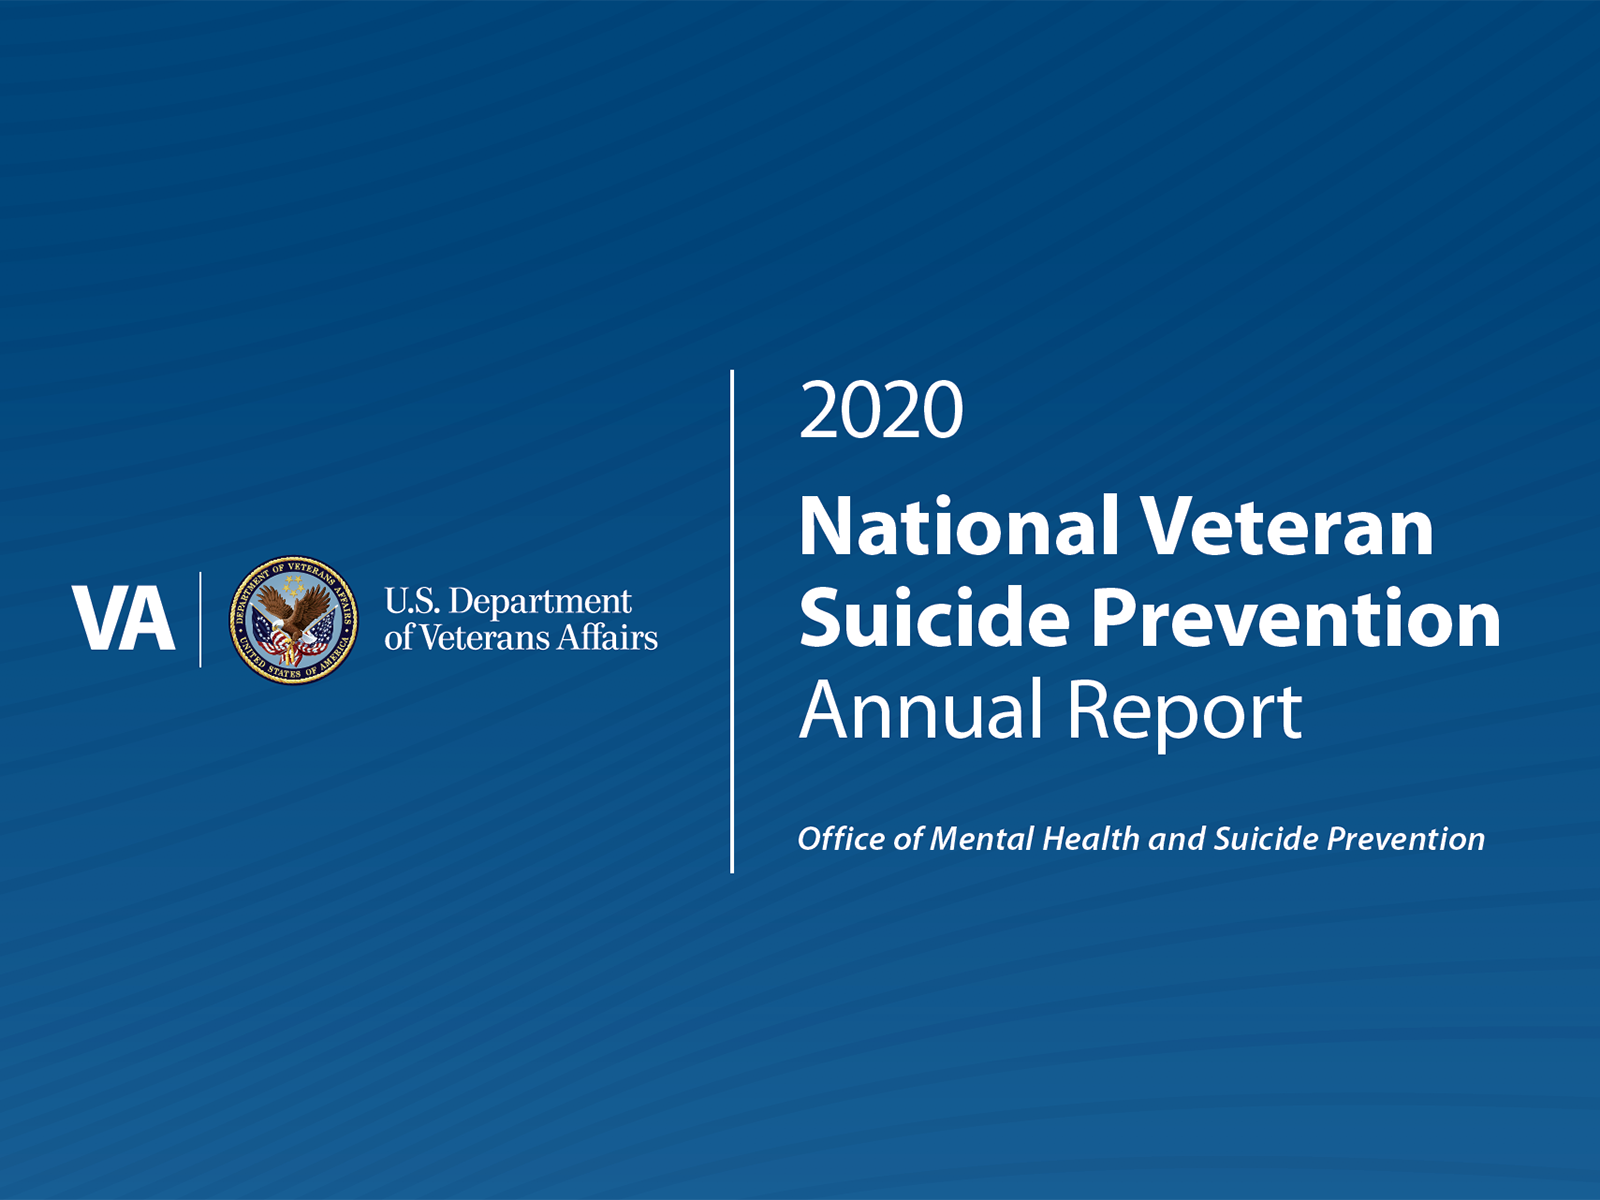 VA Office of Mental Health and Suidice Prevention: 2020 National Veteran Suicide Prevention Annual Report